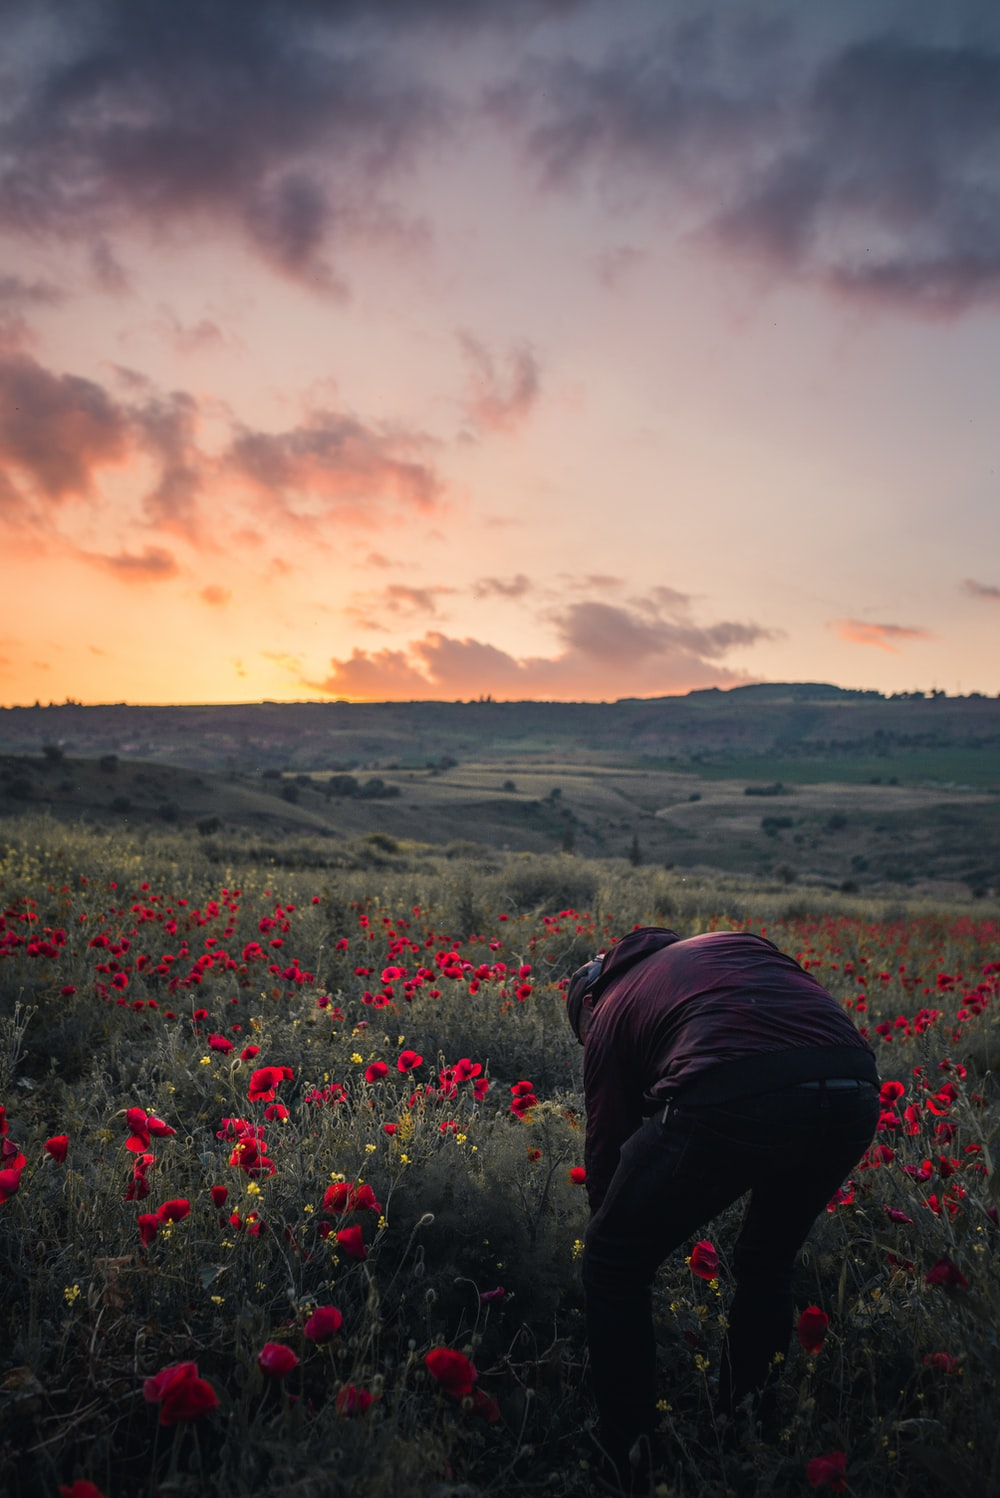 person in maroon shirt on field of red poppy flowers